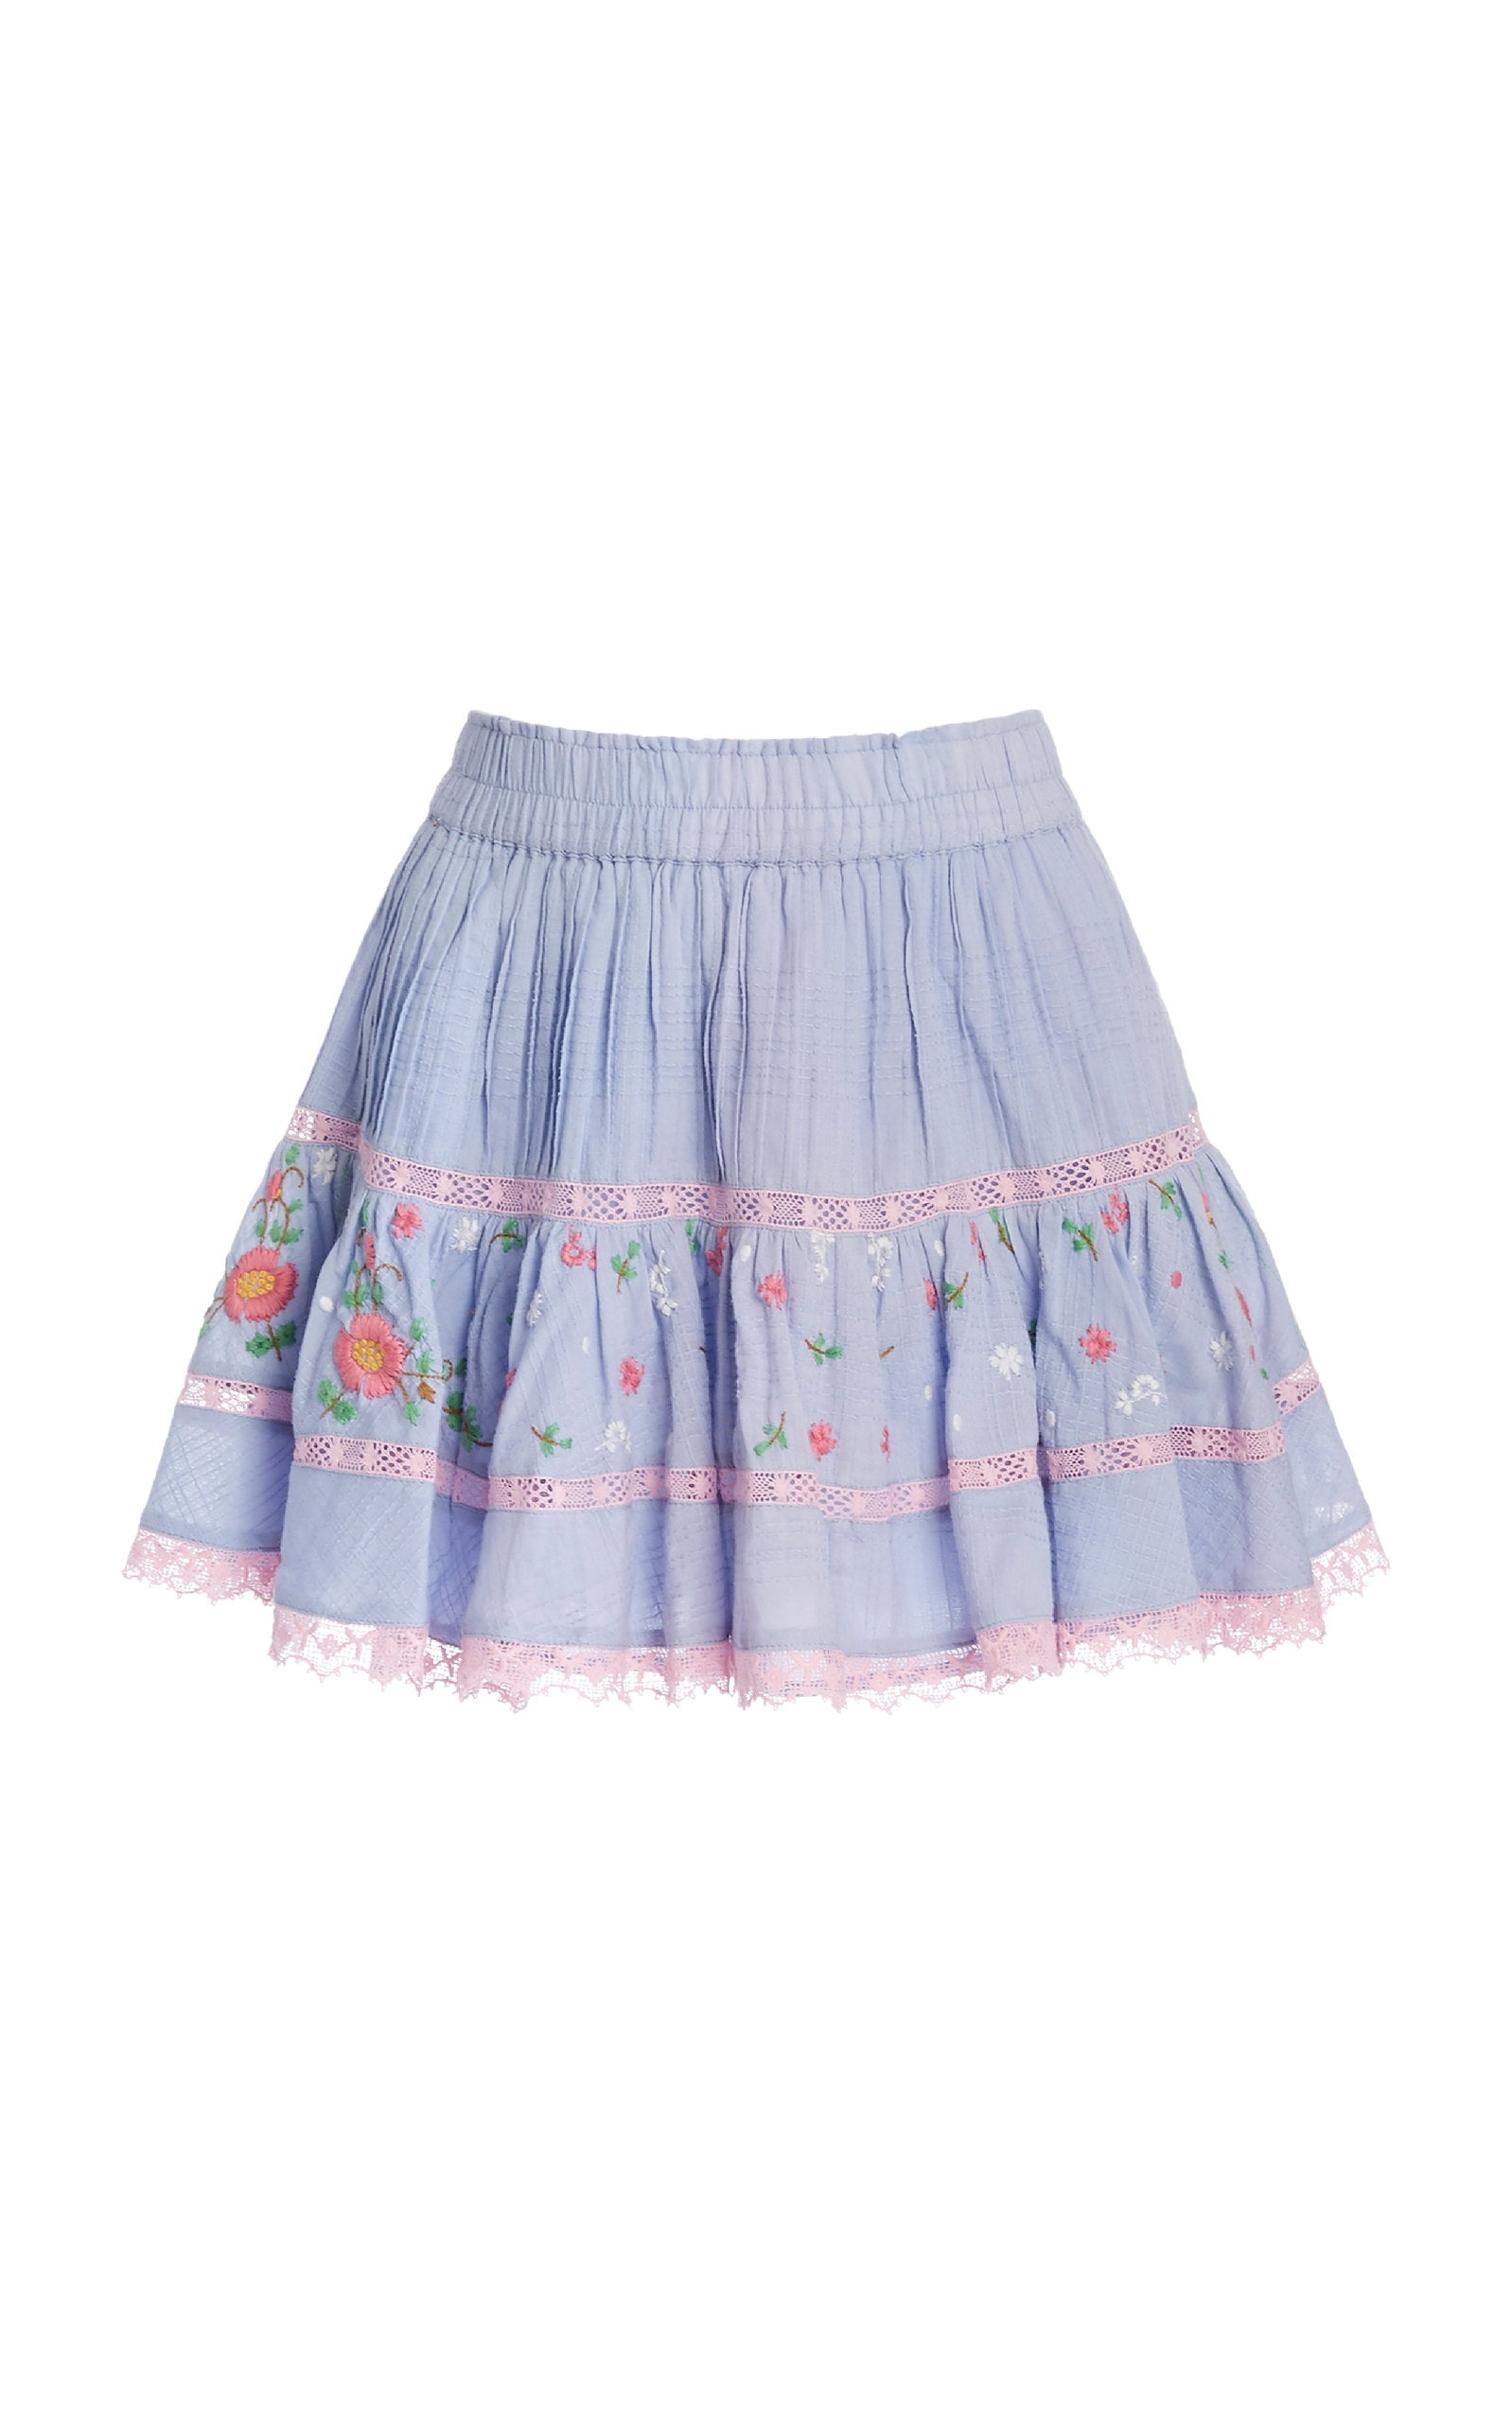 Jennings Skirt-Seaside Afternoon Blue Final Sale